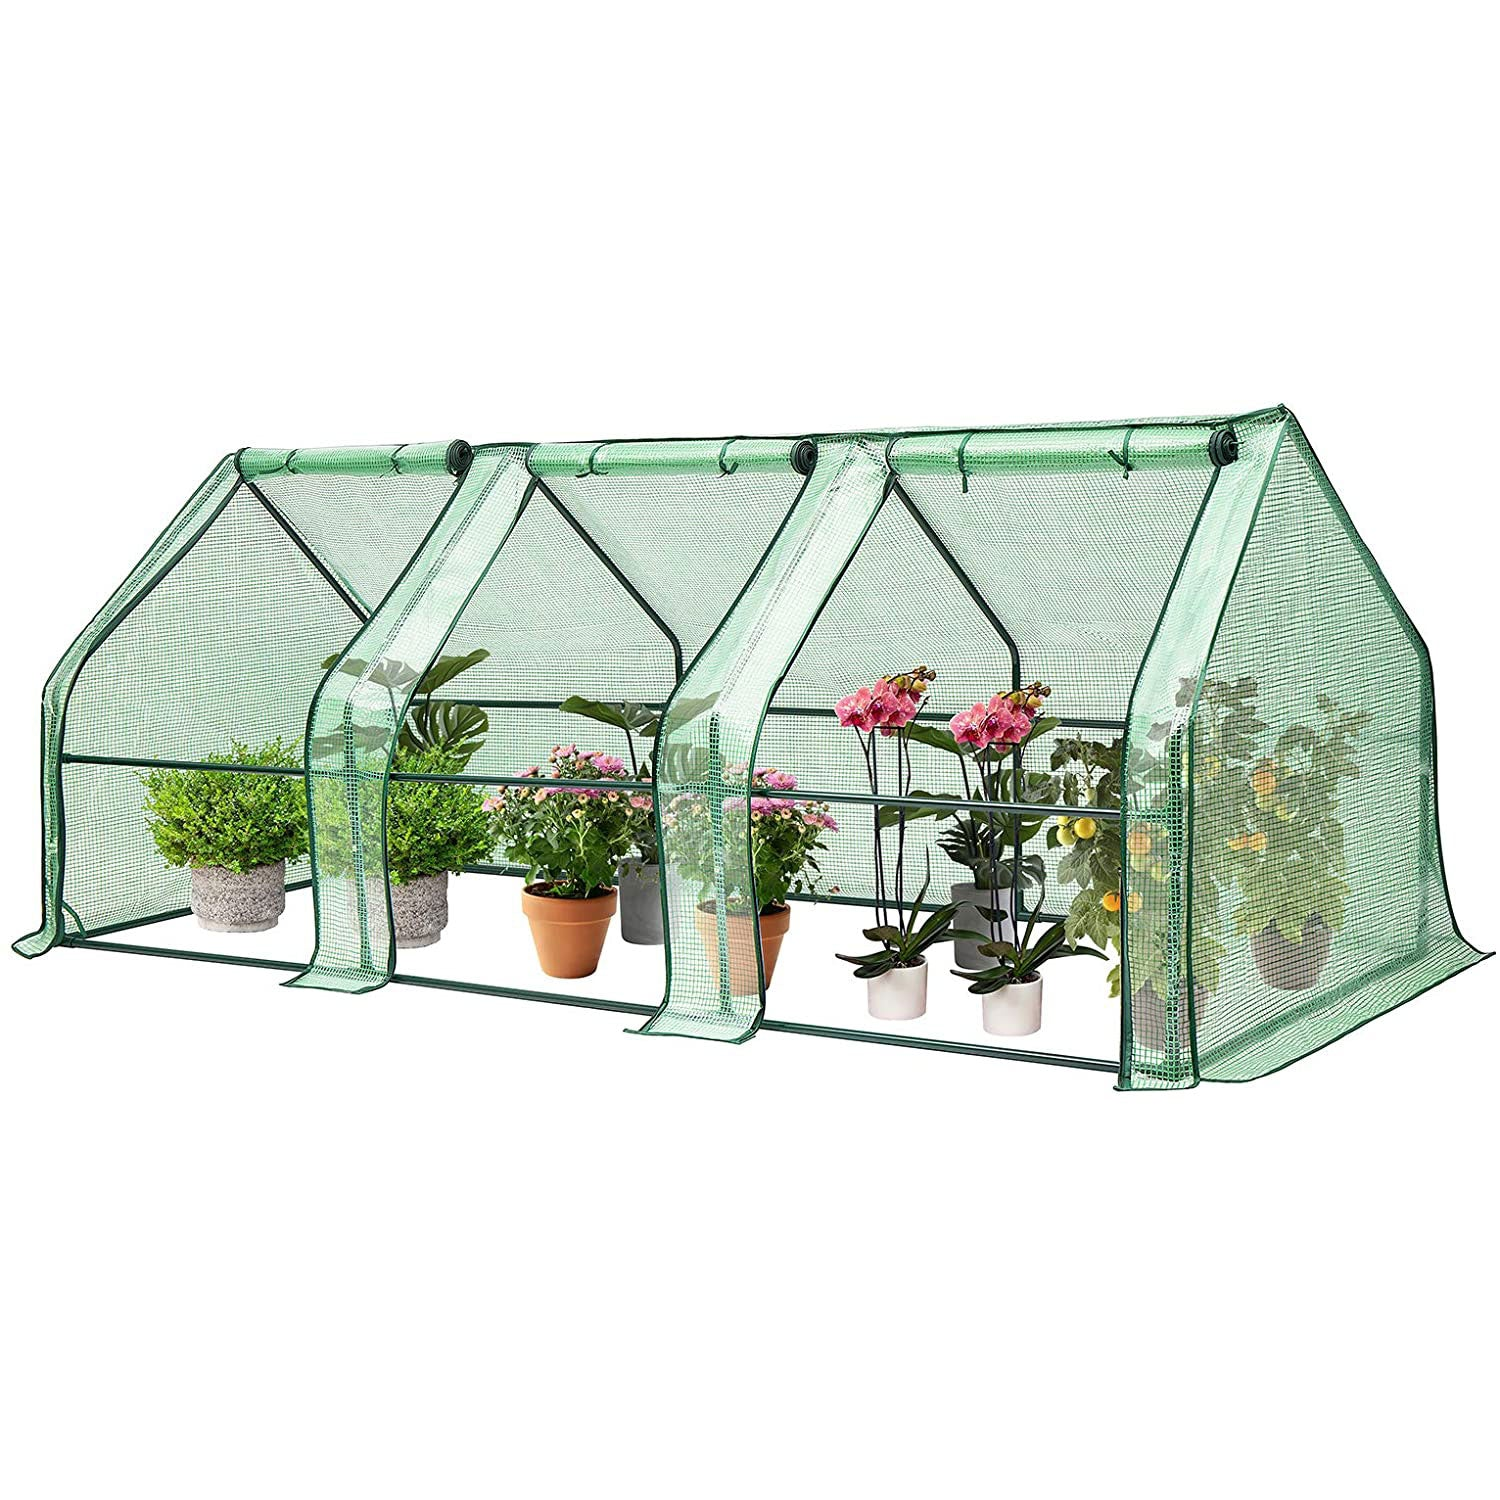 VIVOSUN Portable Greenhouse with Roll-up Large Door 94.5